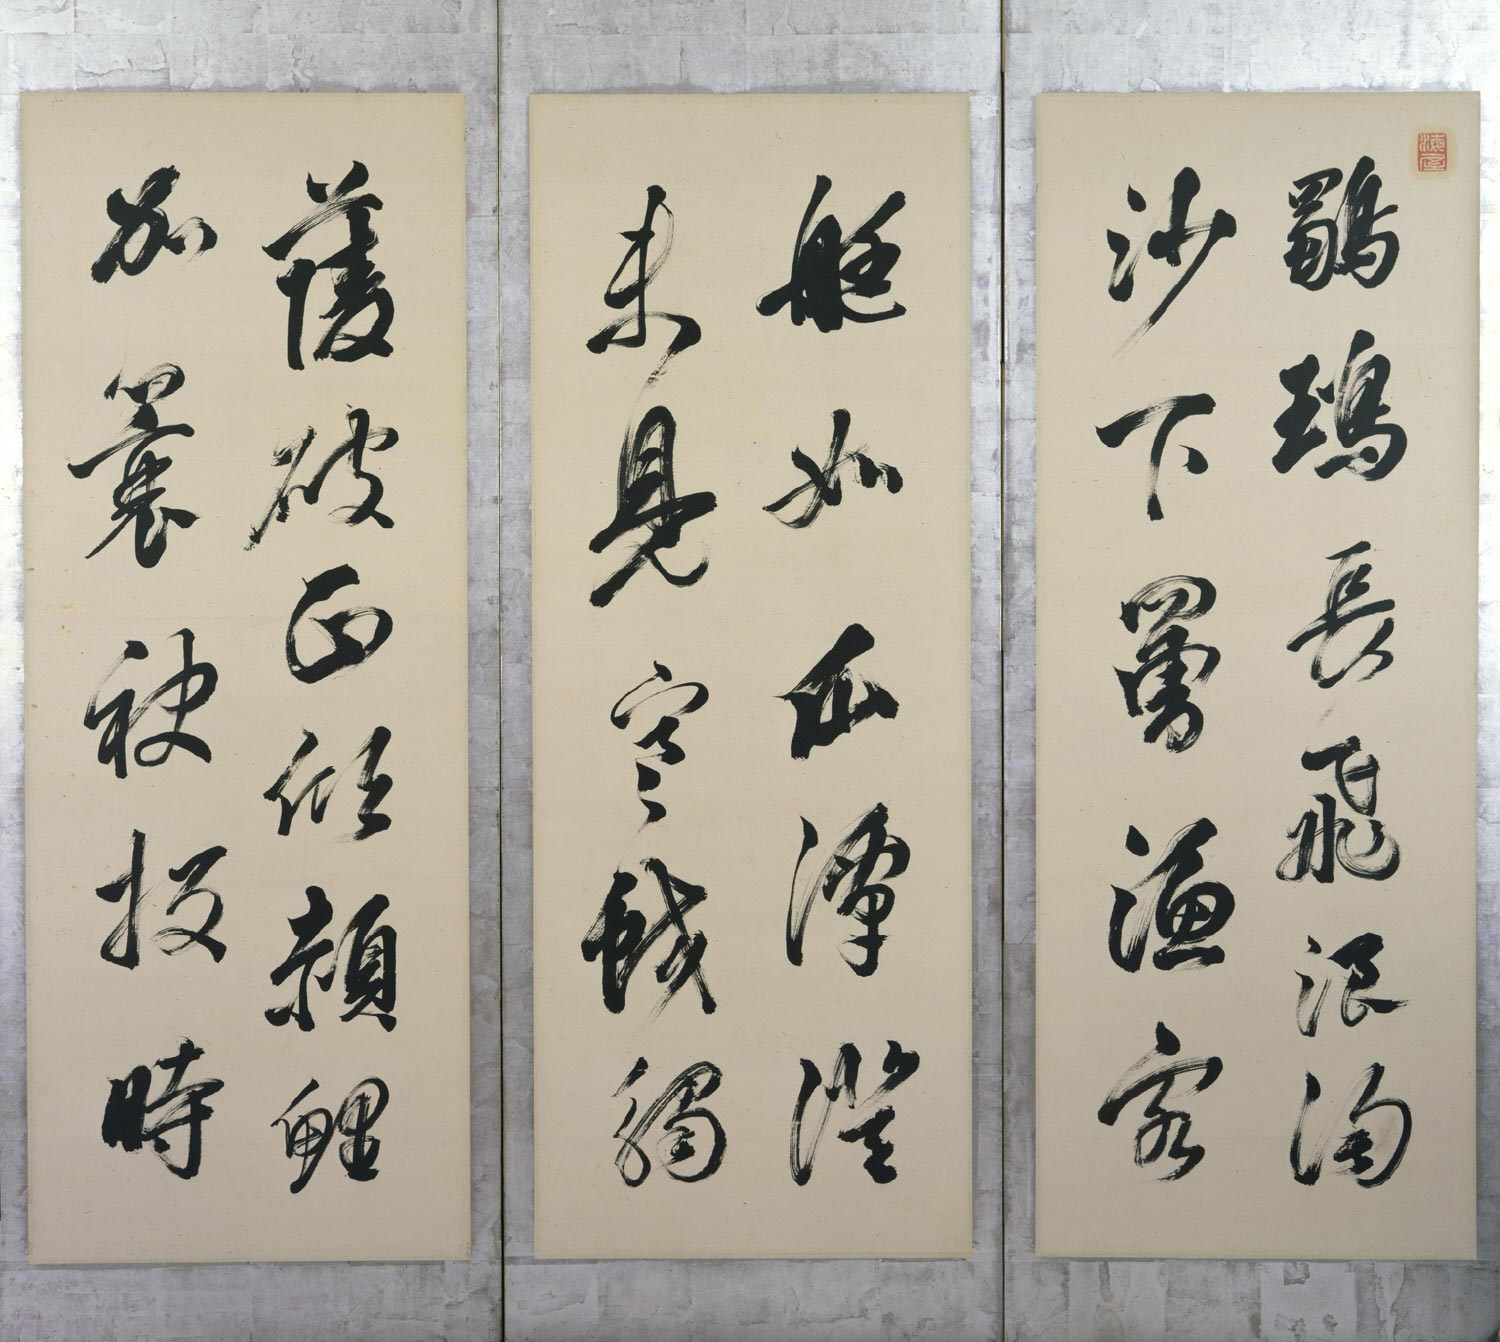 Calligraphy of the Poem